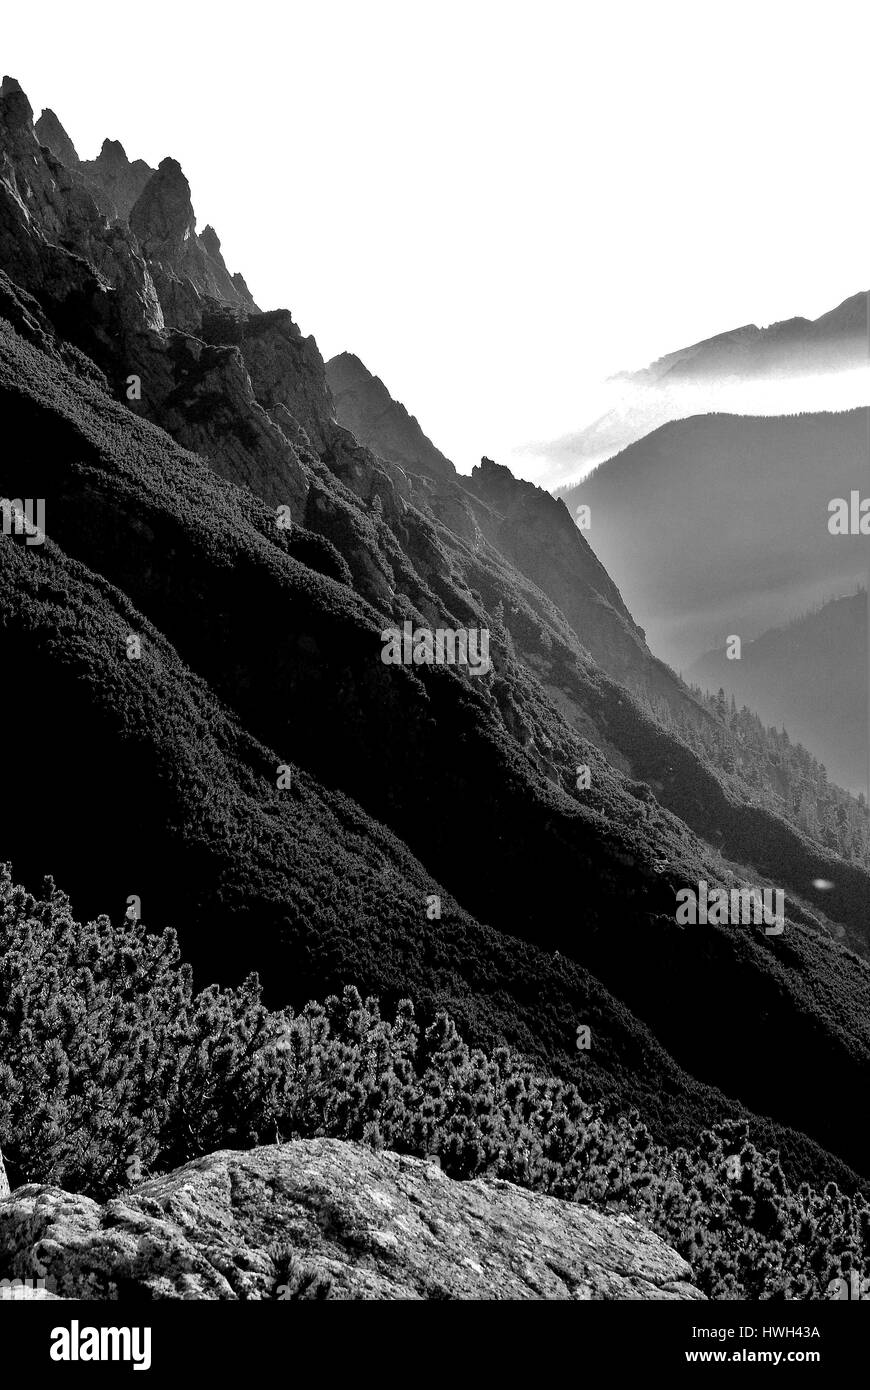 tatra mountains - Stock Image